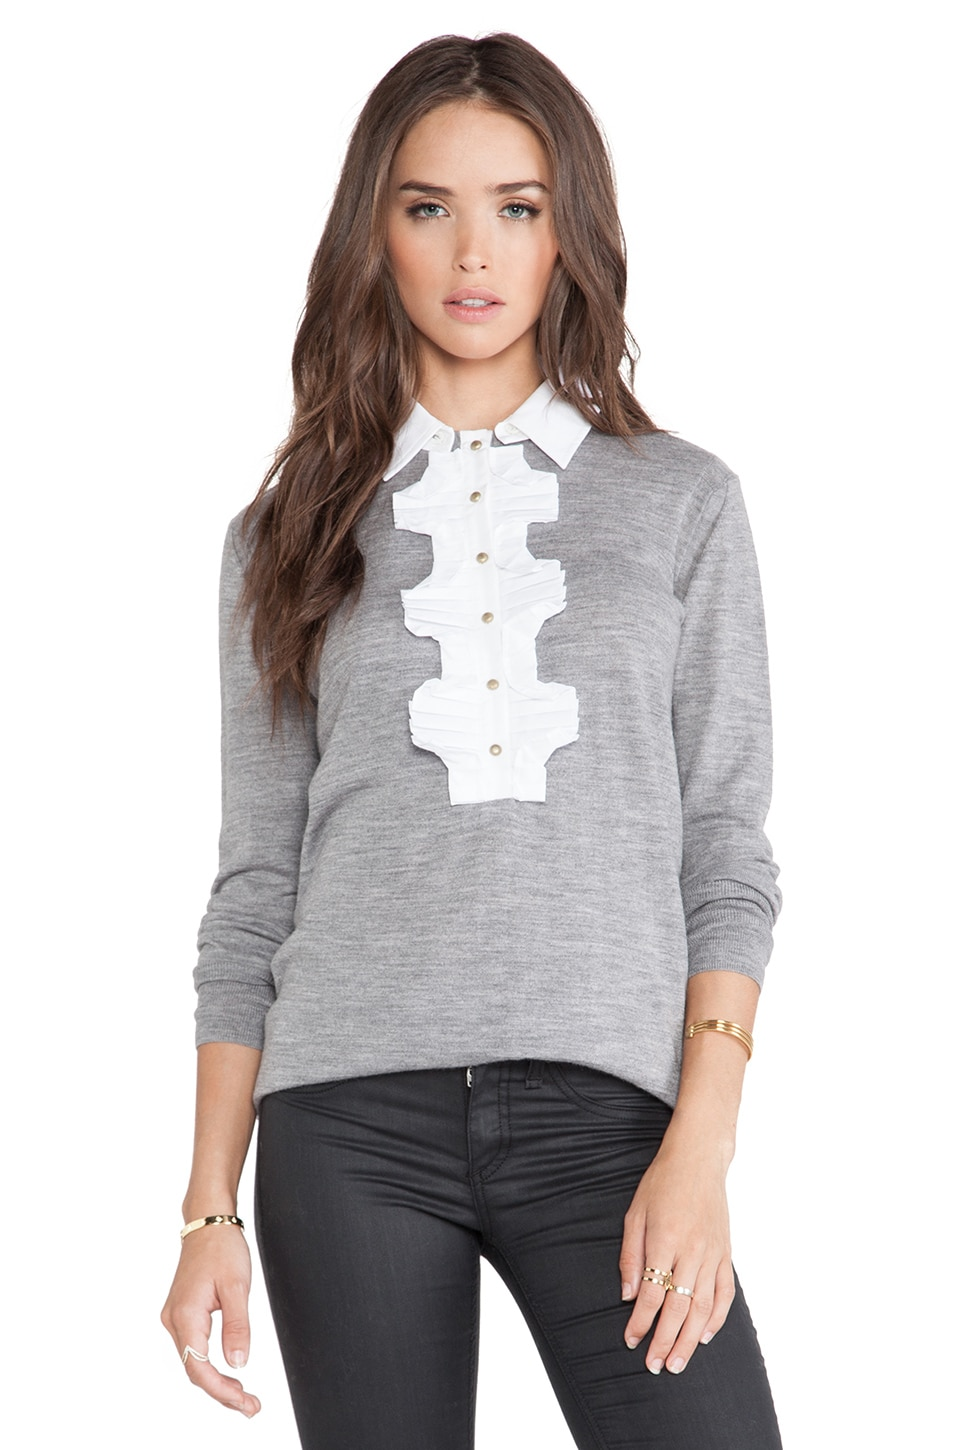 Marchesa Voyage Ruffle Front Top in Heather Gray & White